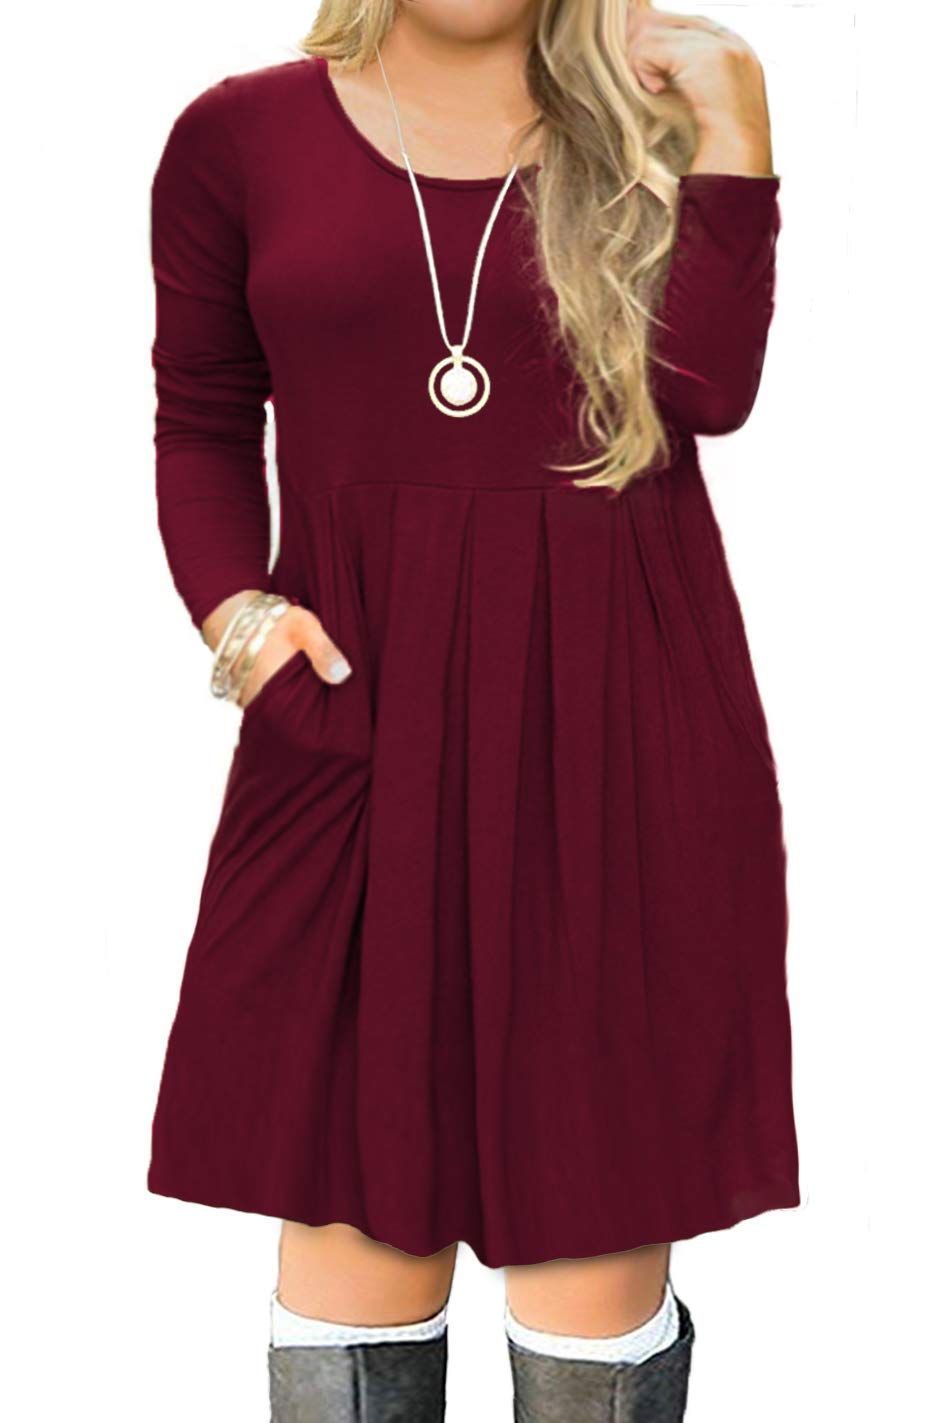 Plus Size Dresses - Women's Casual Loose Pocket Long Dress Short Sleeve Split Maxi Dresses